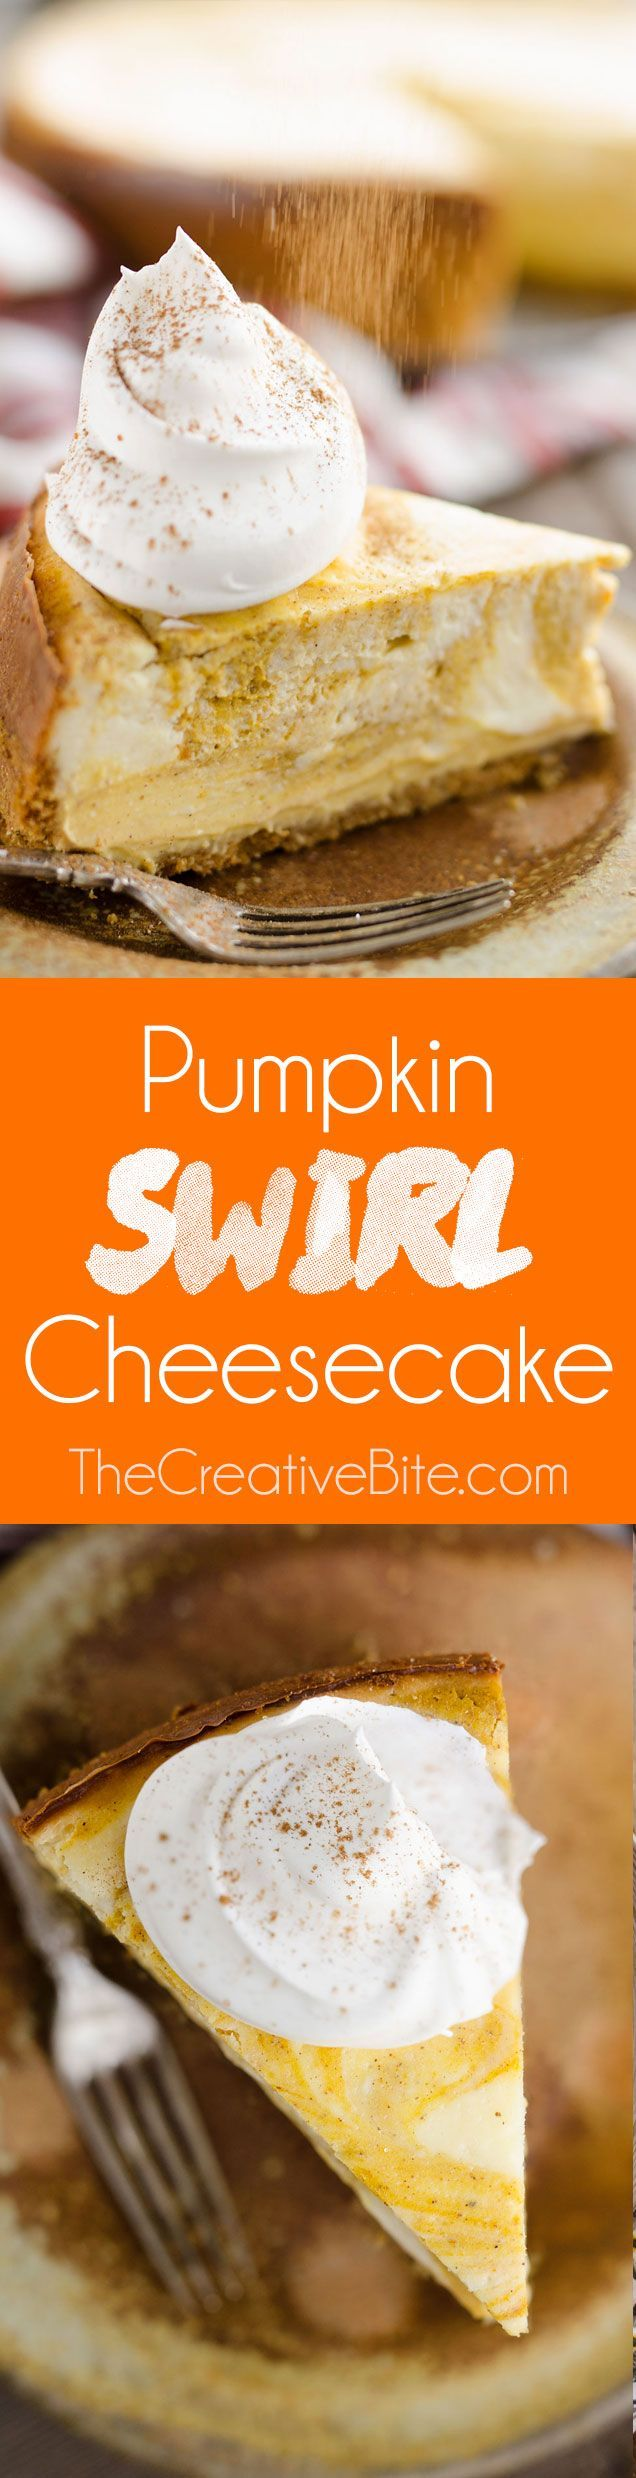 Pumpkin Swirl Cheesecake is a rich and delicious recipe perfect for the holidays! A thick New York style cheesecake is swirled with a sweet pumpkin mixture in a pecan crust for a festive twist on a classic dessert. #Pumpkin #Cheesecake #Dessert